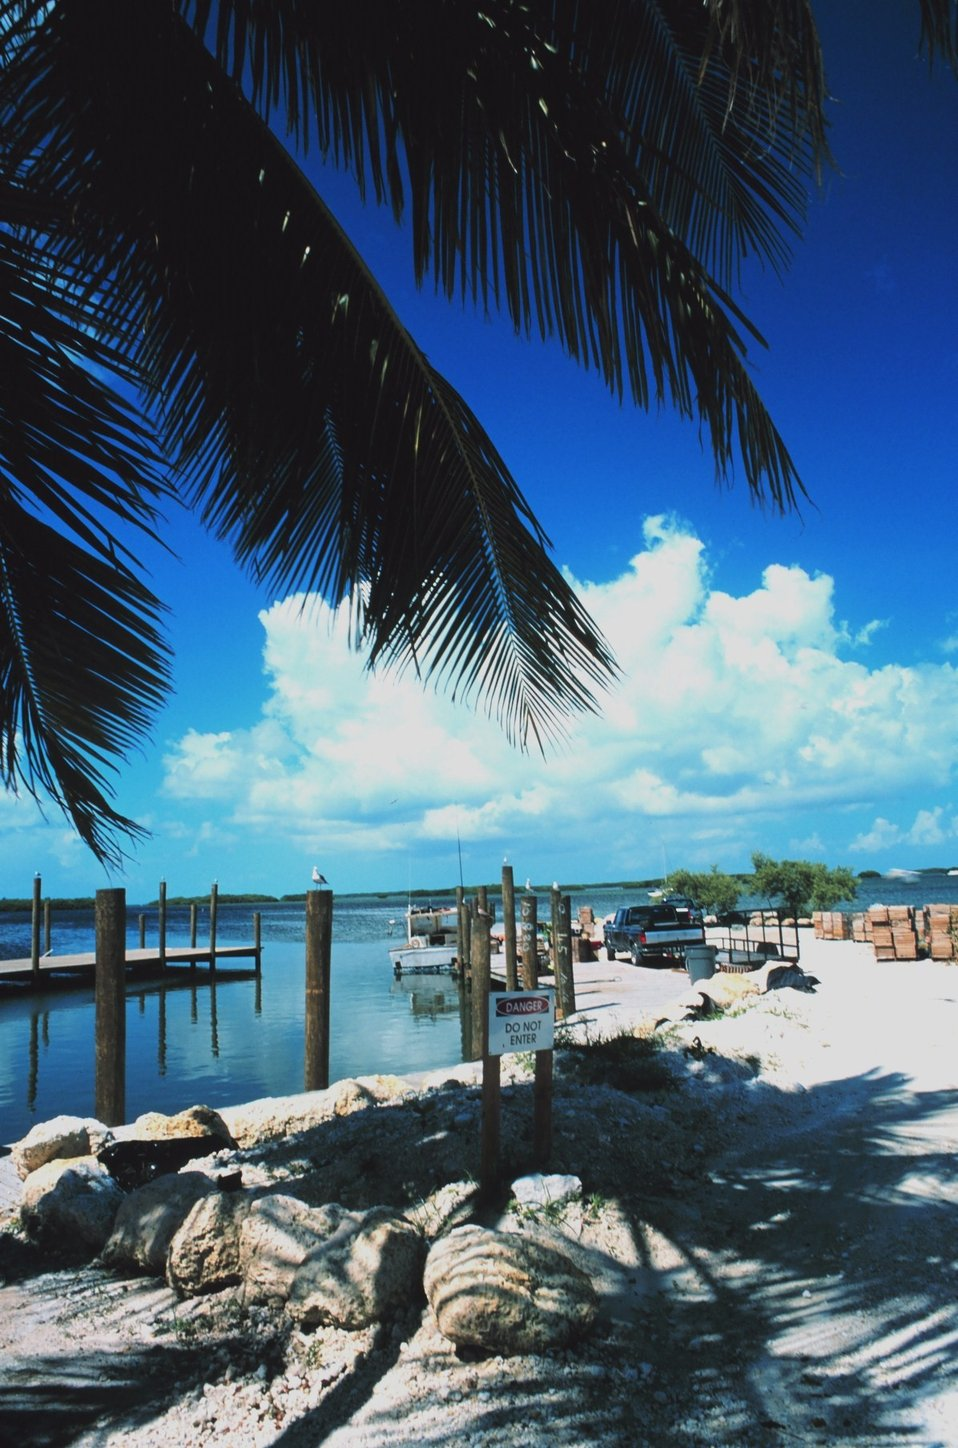 Fishing in paradise - the stone crab fishery at Islamorada